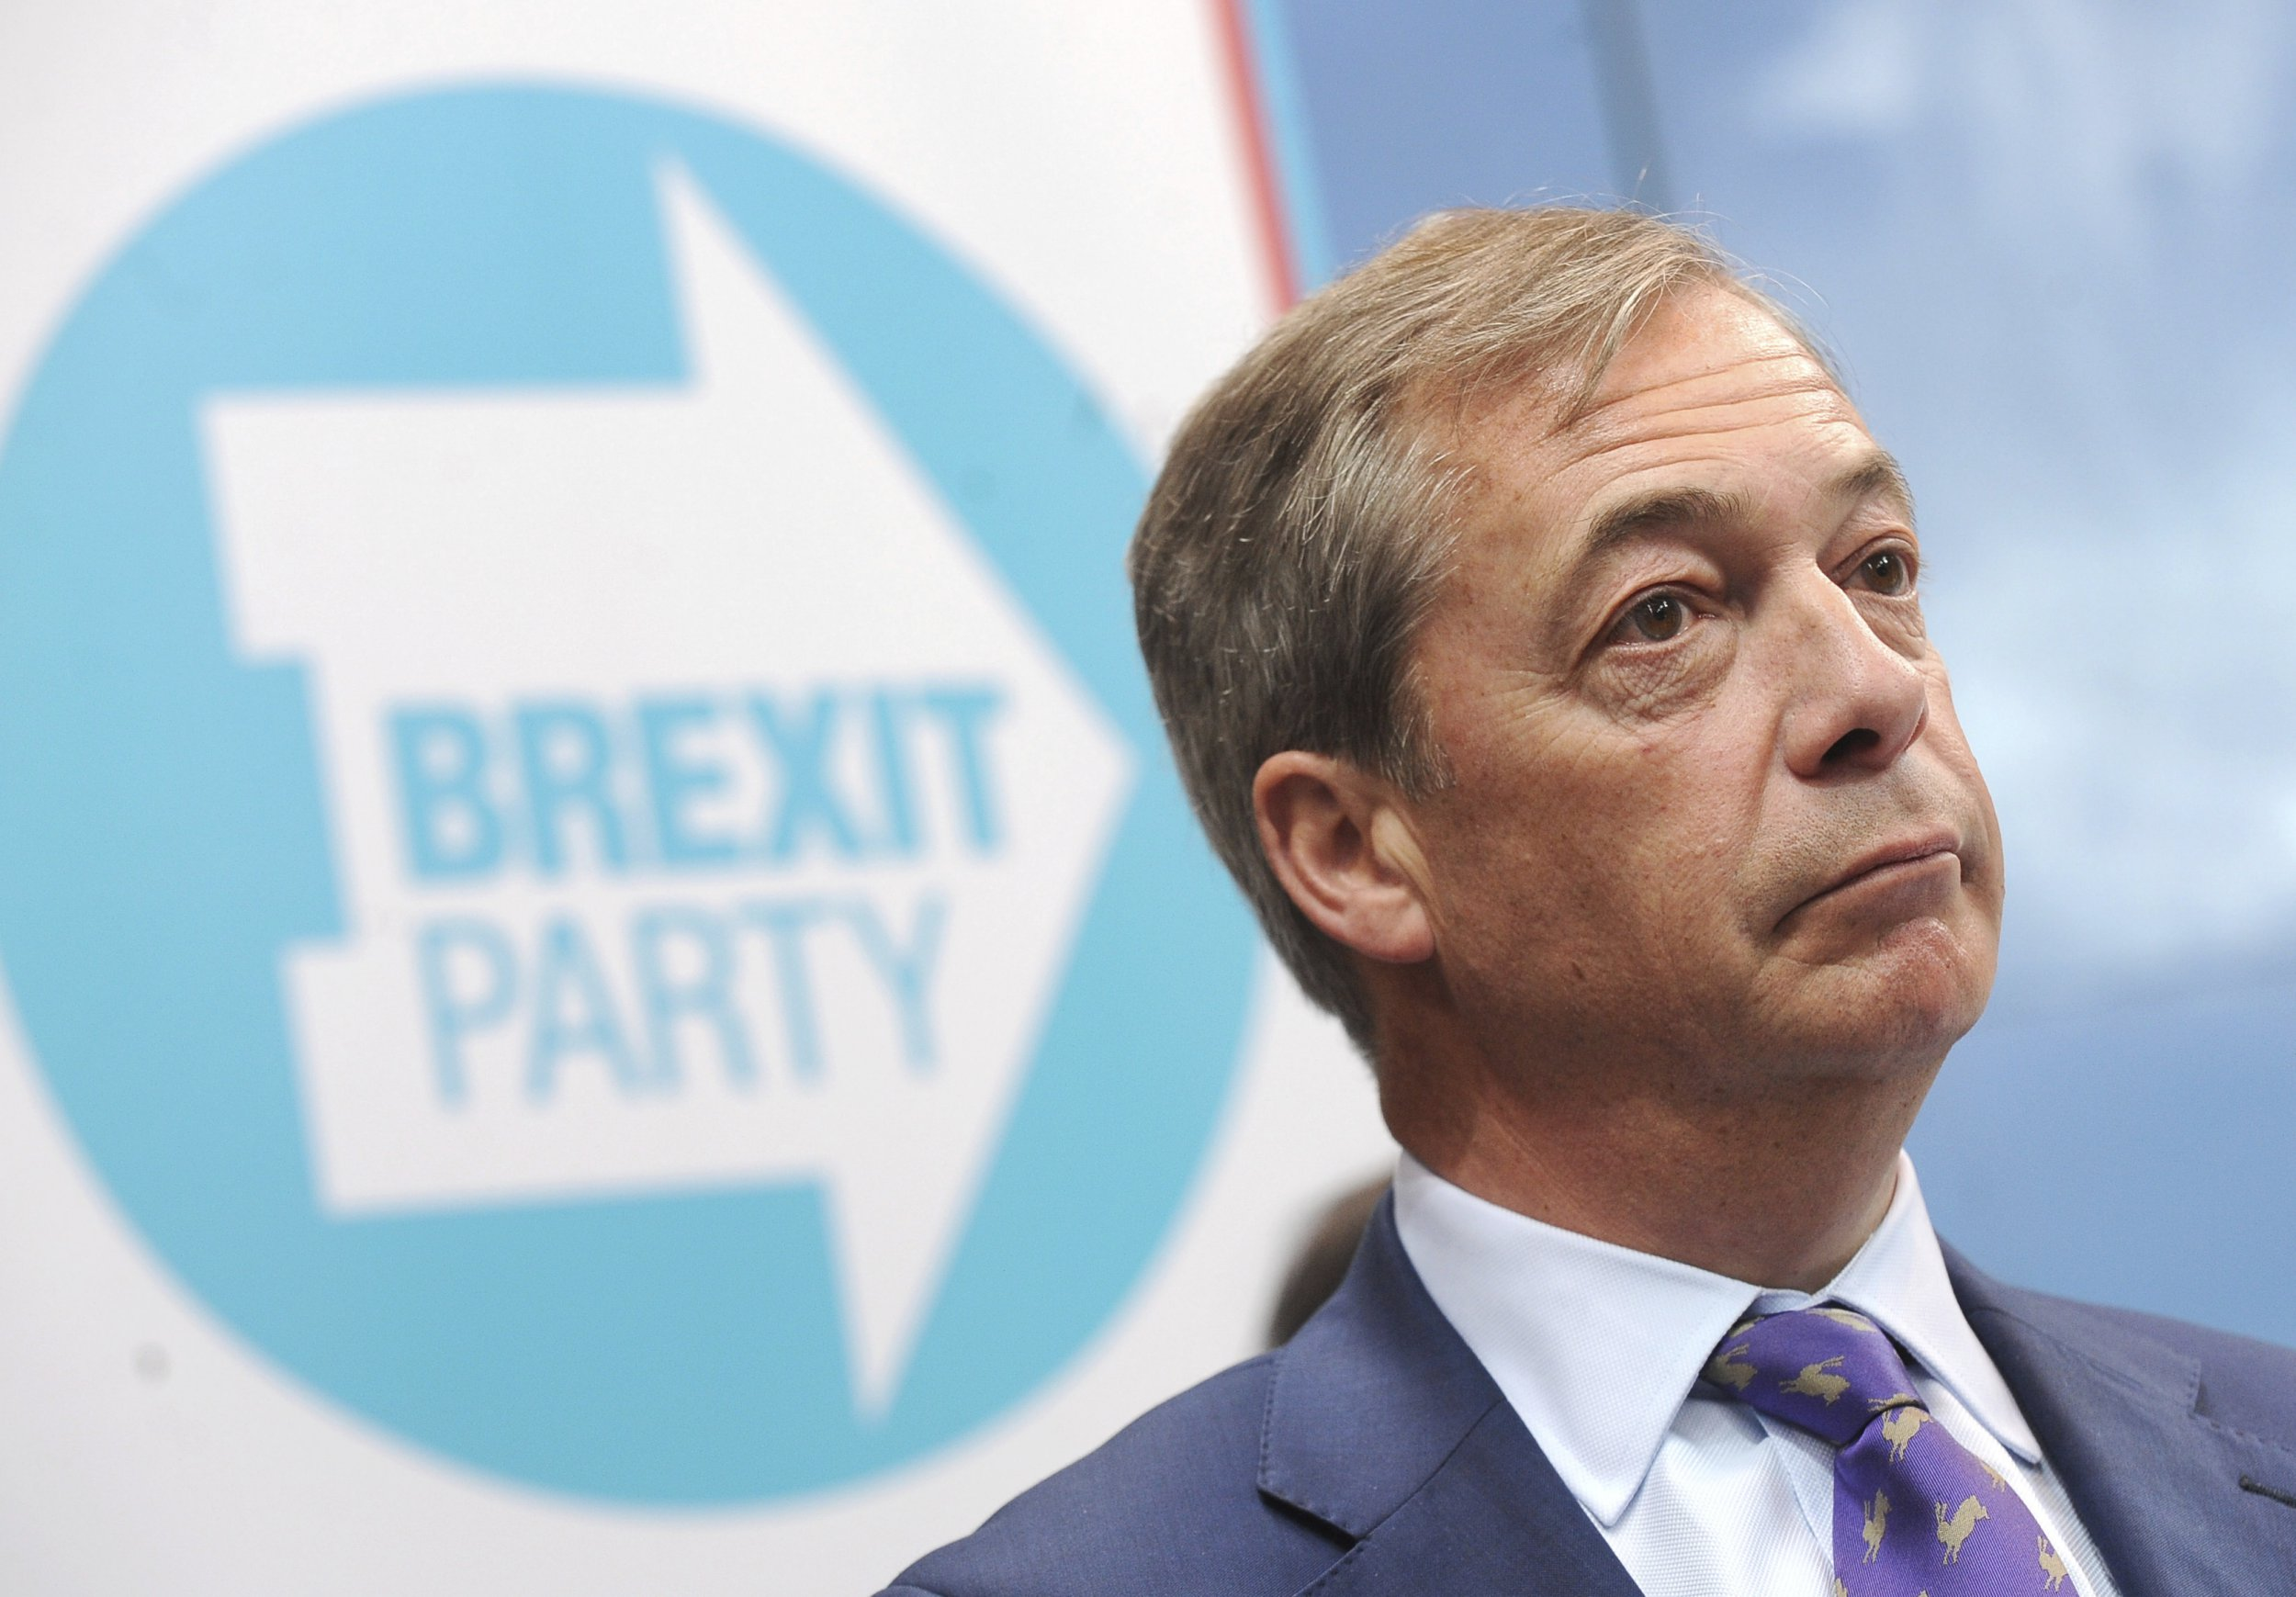 Nigel Farage vows 'no more Mr Nice Guy' at launch of Brexit Party